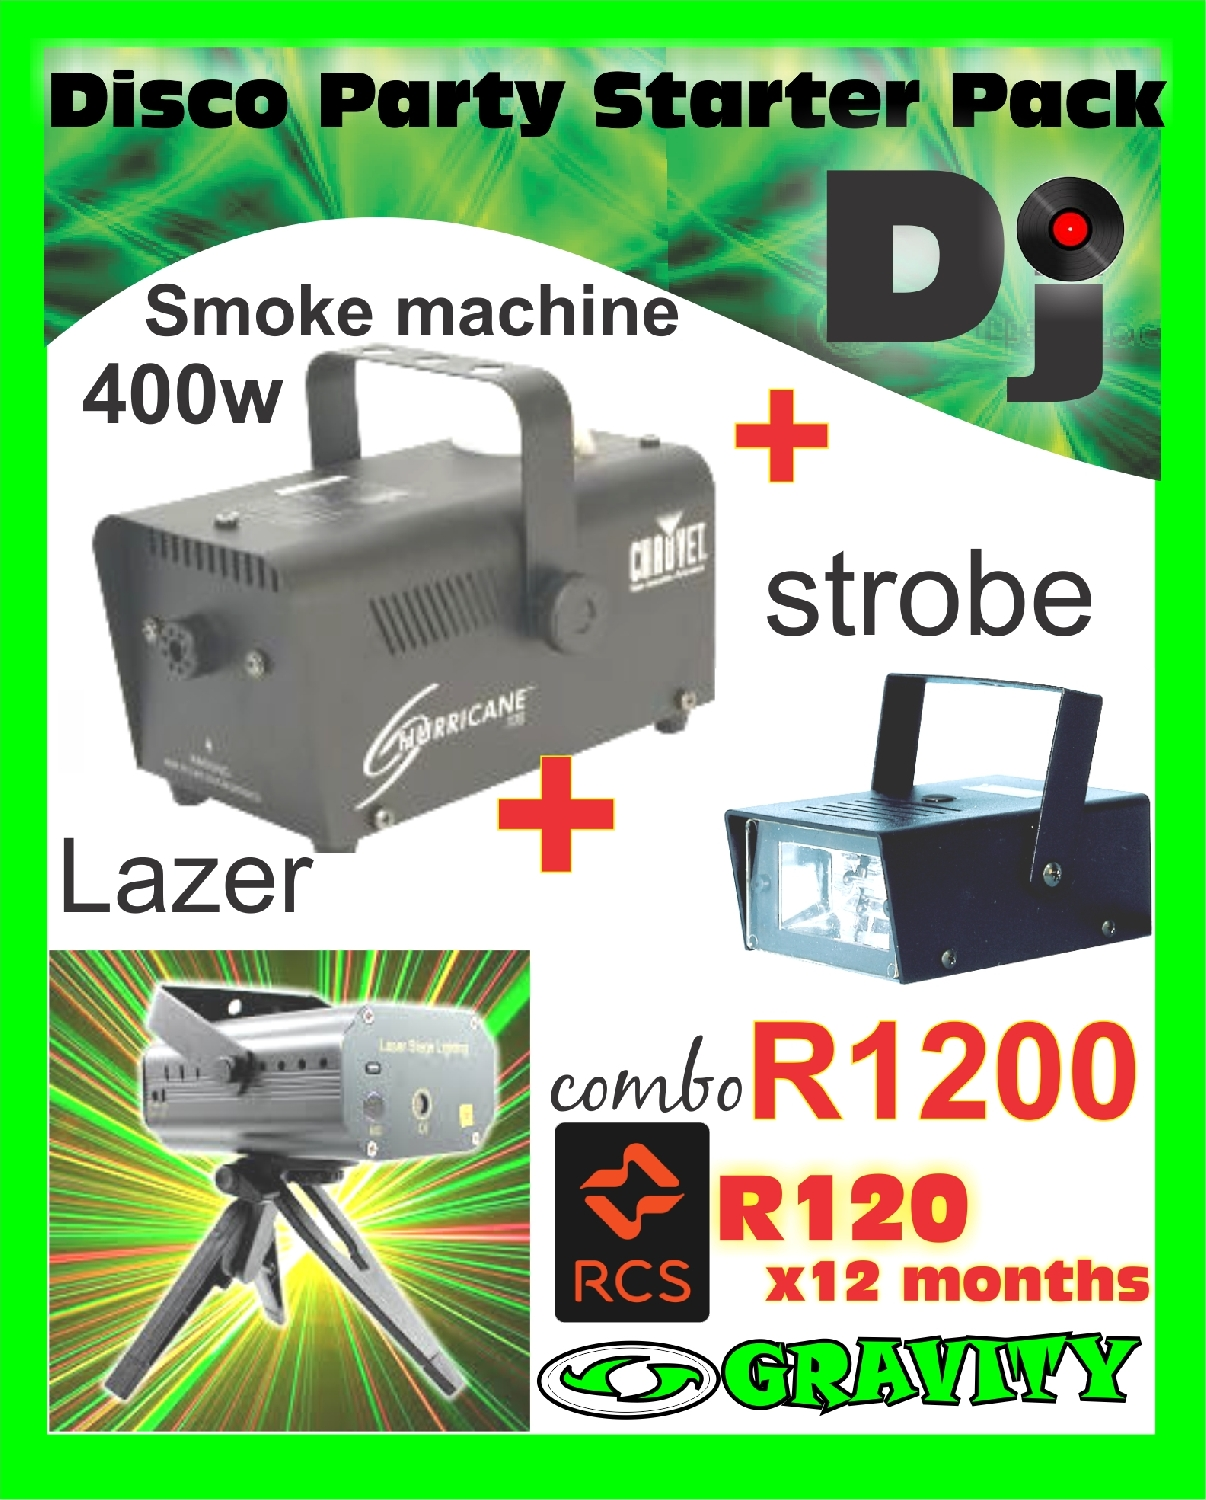 dj combo light for sale at gravity dj store durban 0315072463  smoke ...lazer light...strobe light....combo R995 cash deal...Rcs credit card accepted as well